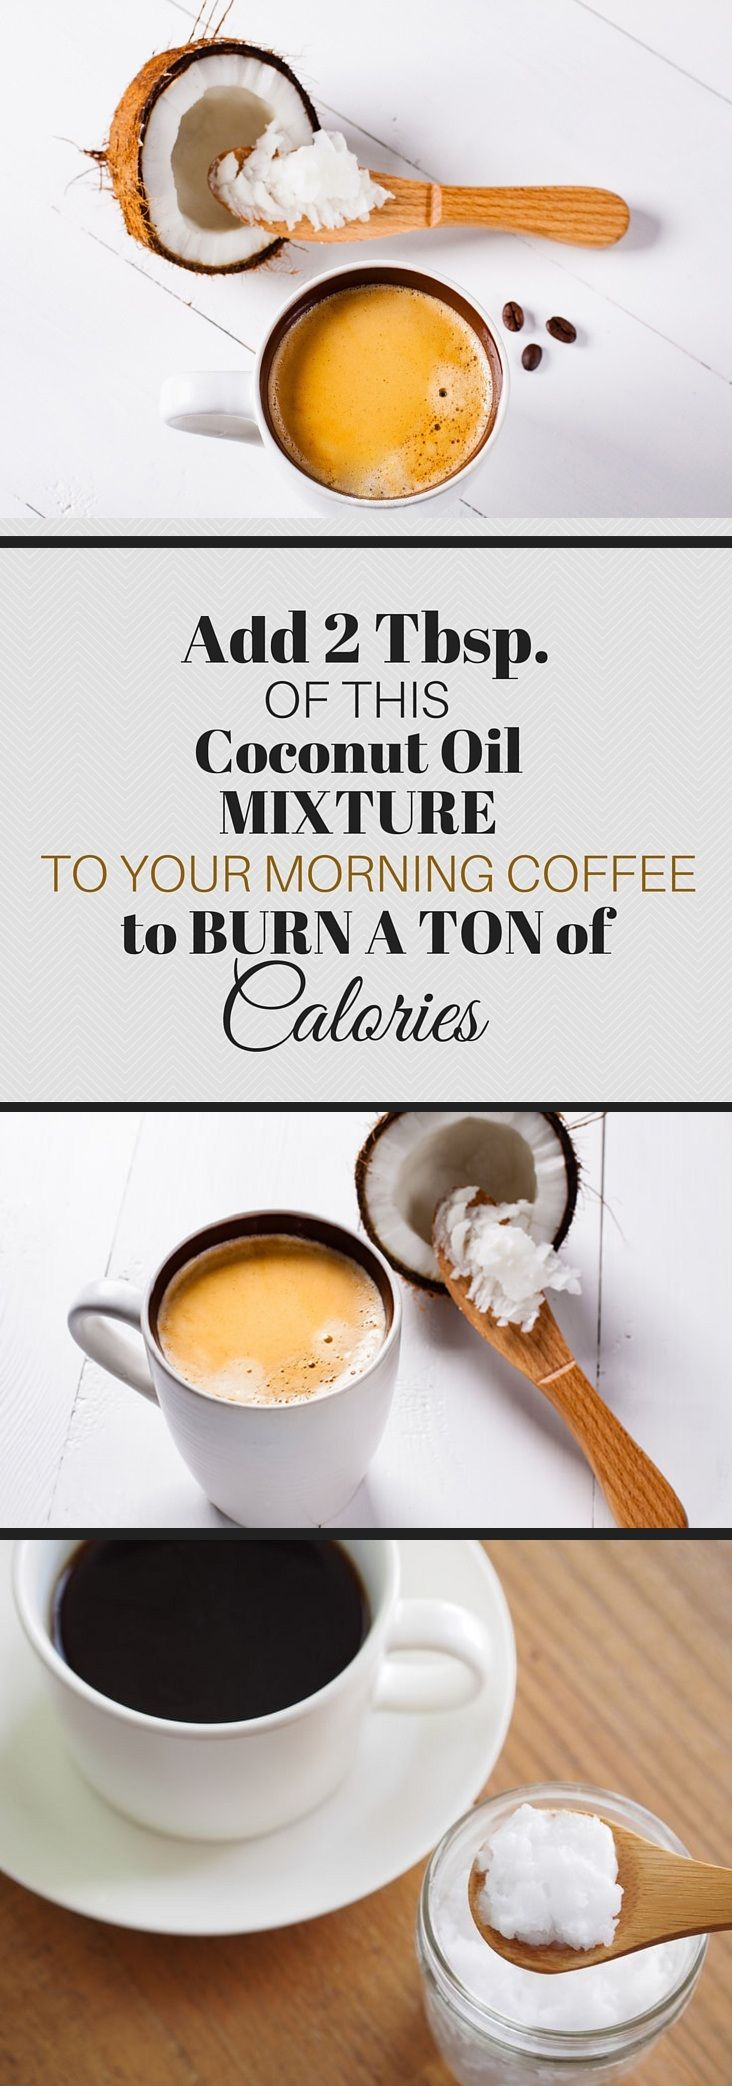 how to add coconut oil to coffee